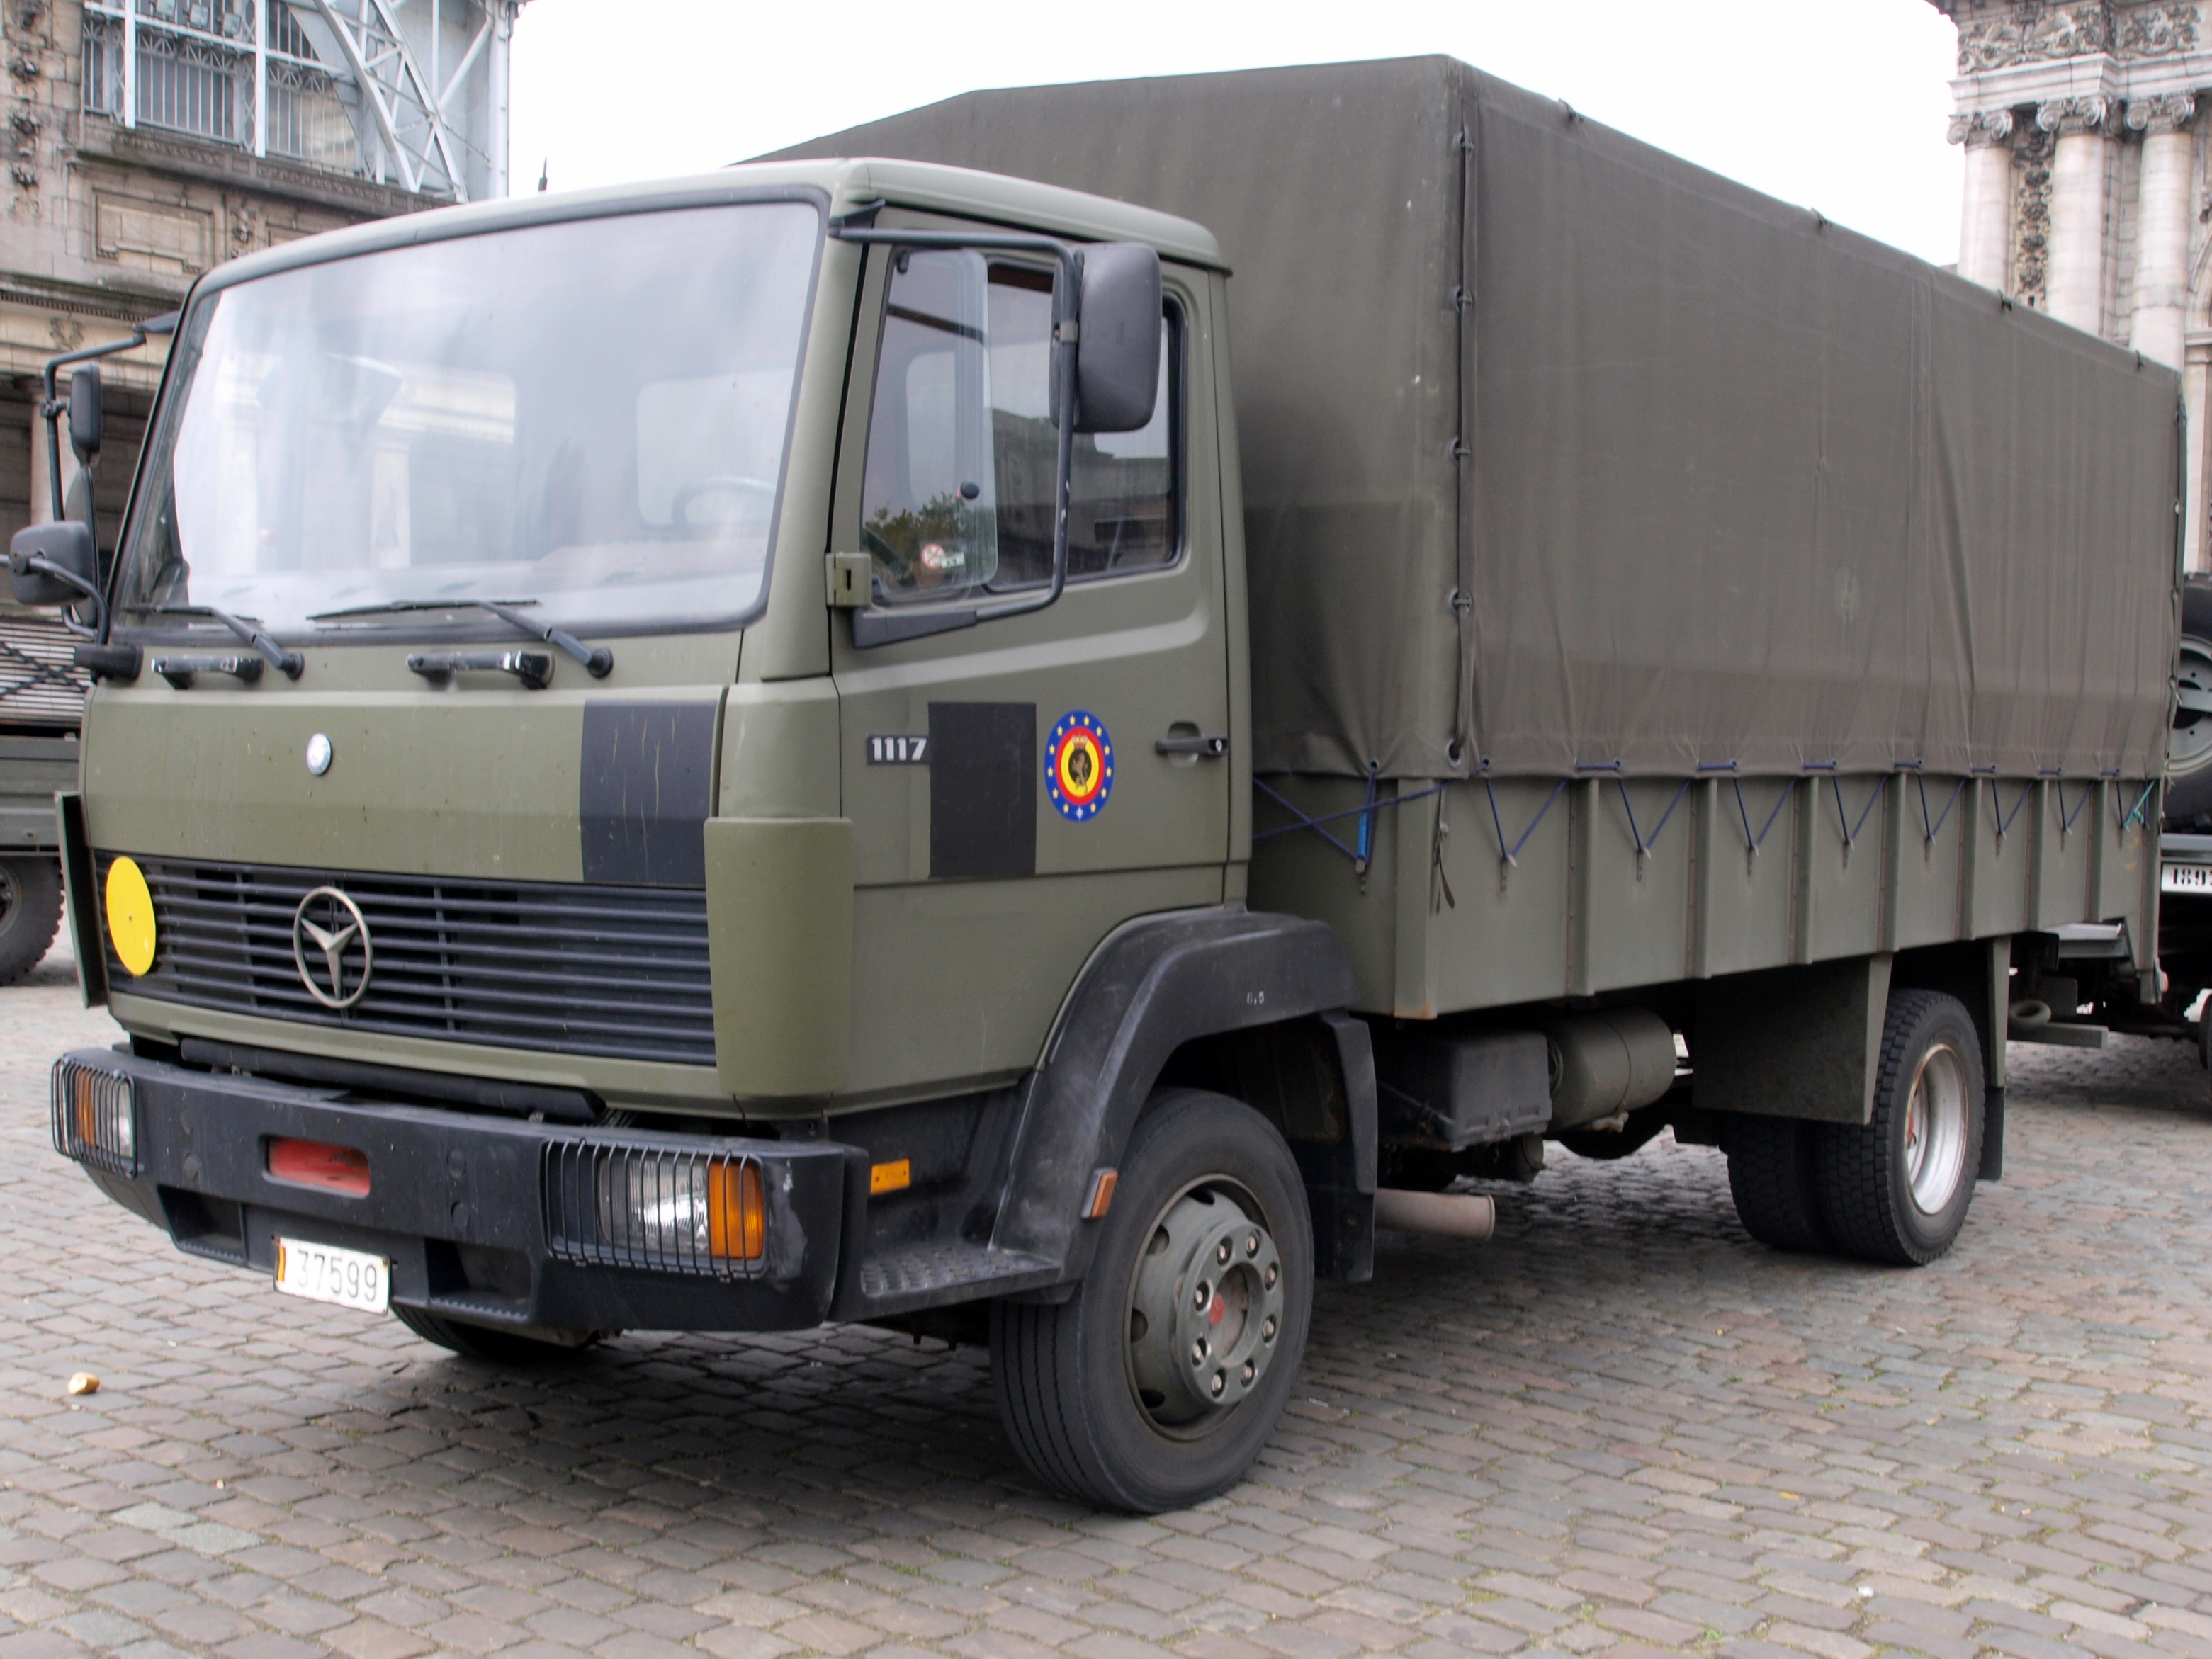 File:Mercedes 1117 of the Belgian Army, licence registration 37599.JPG